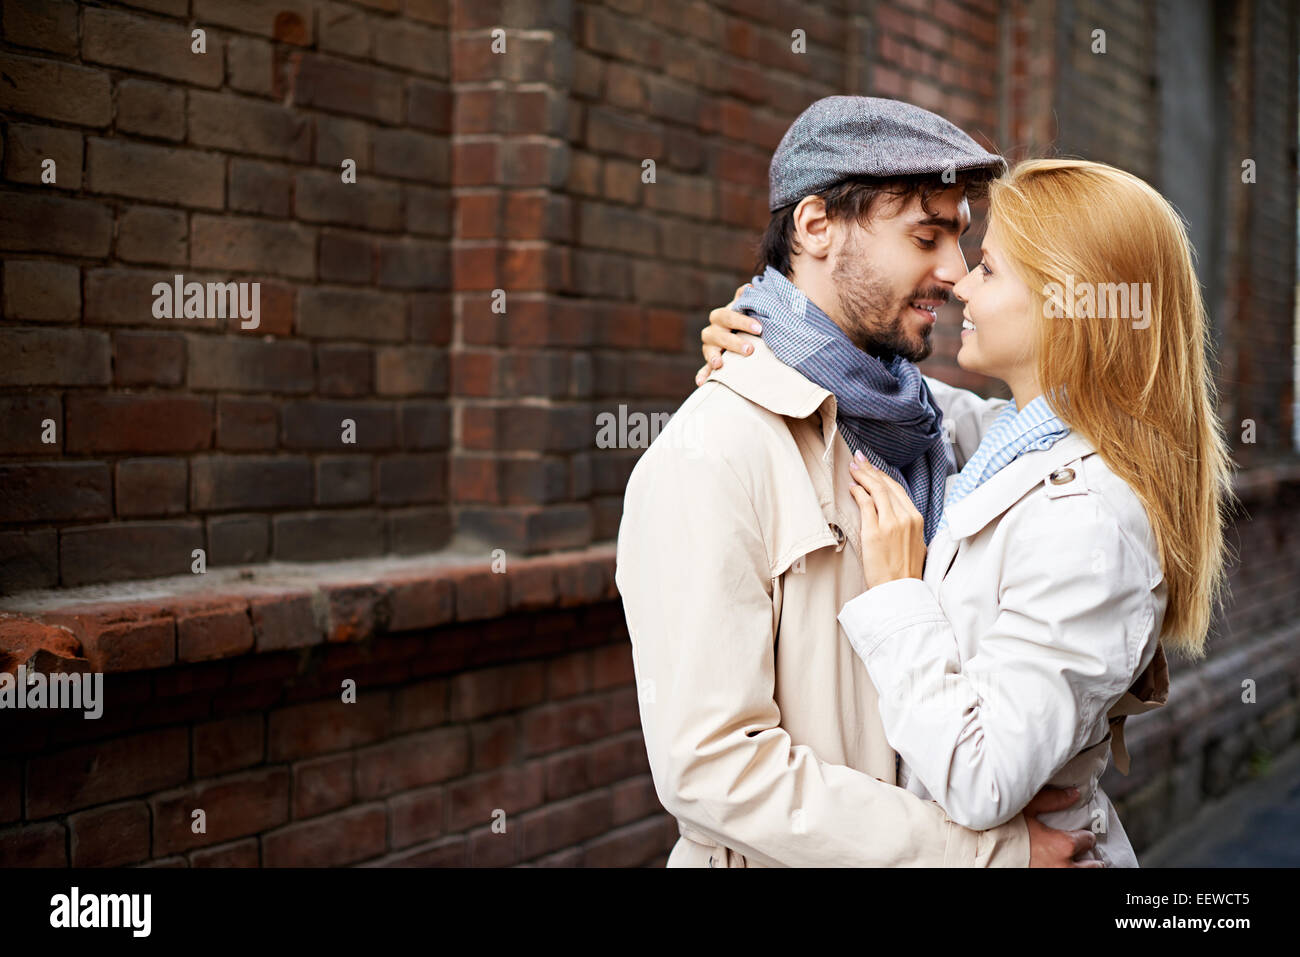 Amorous dates in stylish casualwear in urban environment - Stock Image